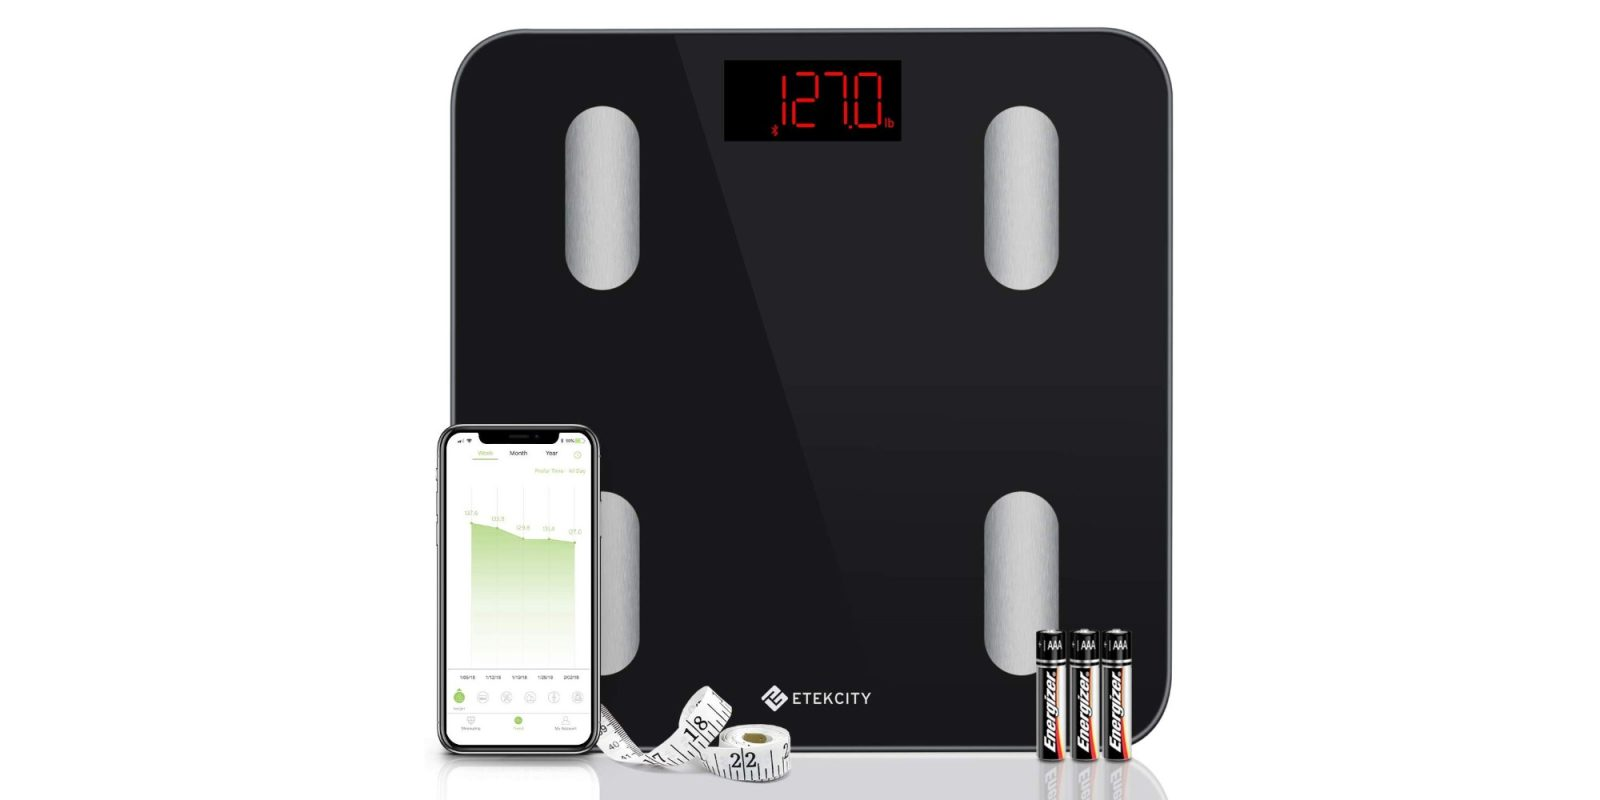 Track weight, BMI, more with Etekcity's Bluetooth HealthKit Smart Scale at $20